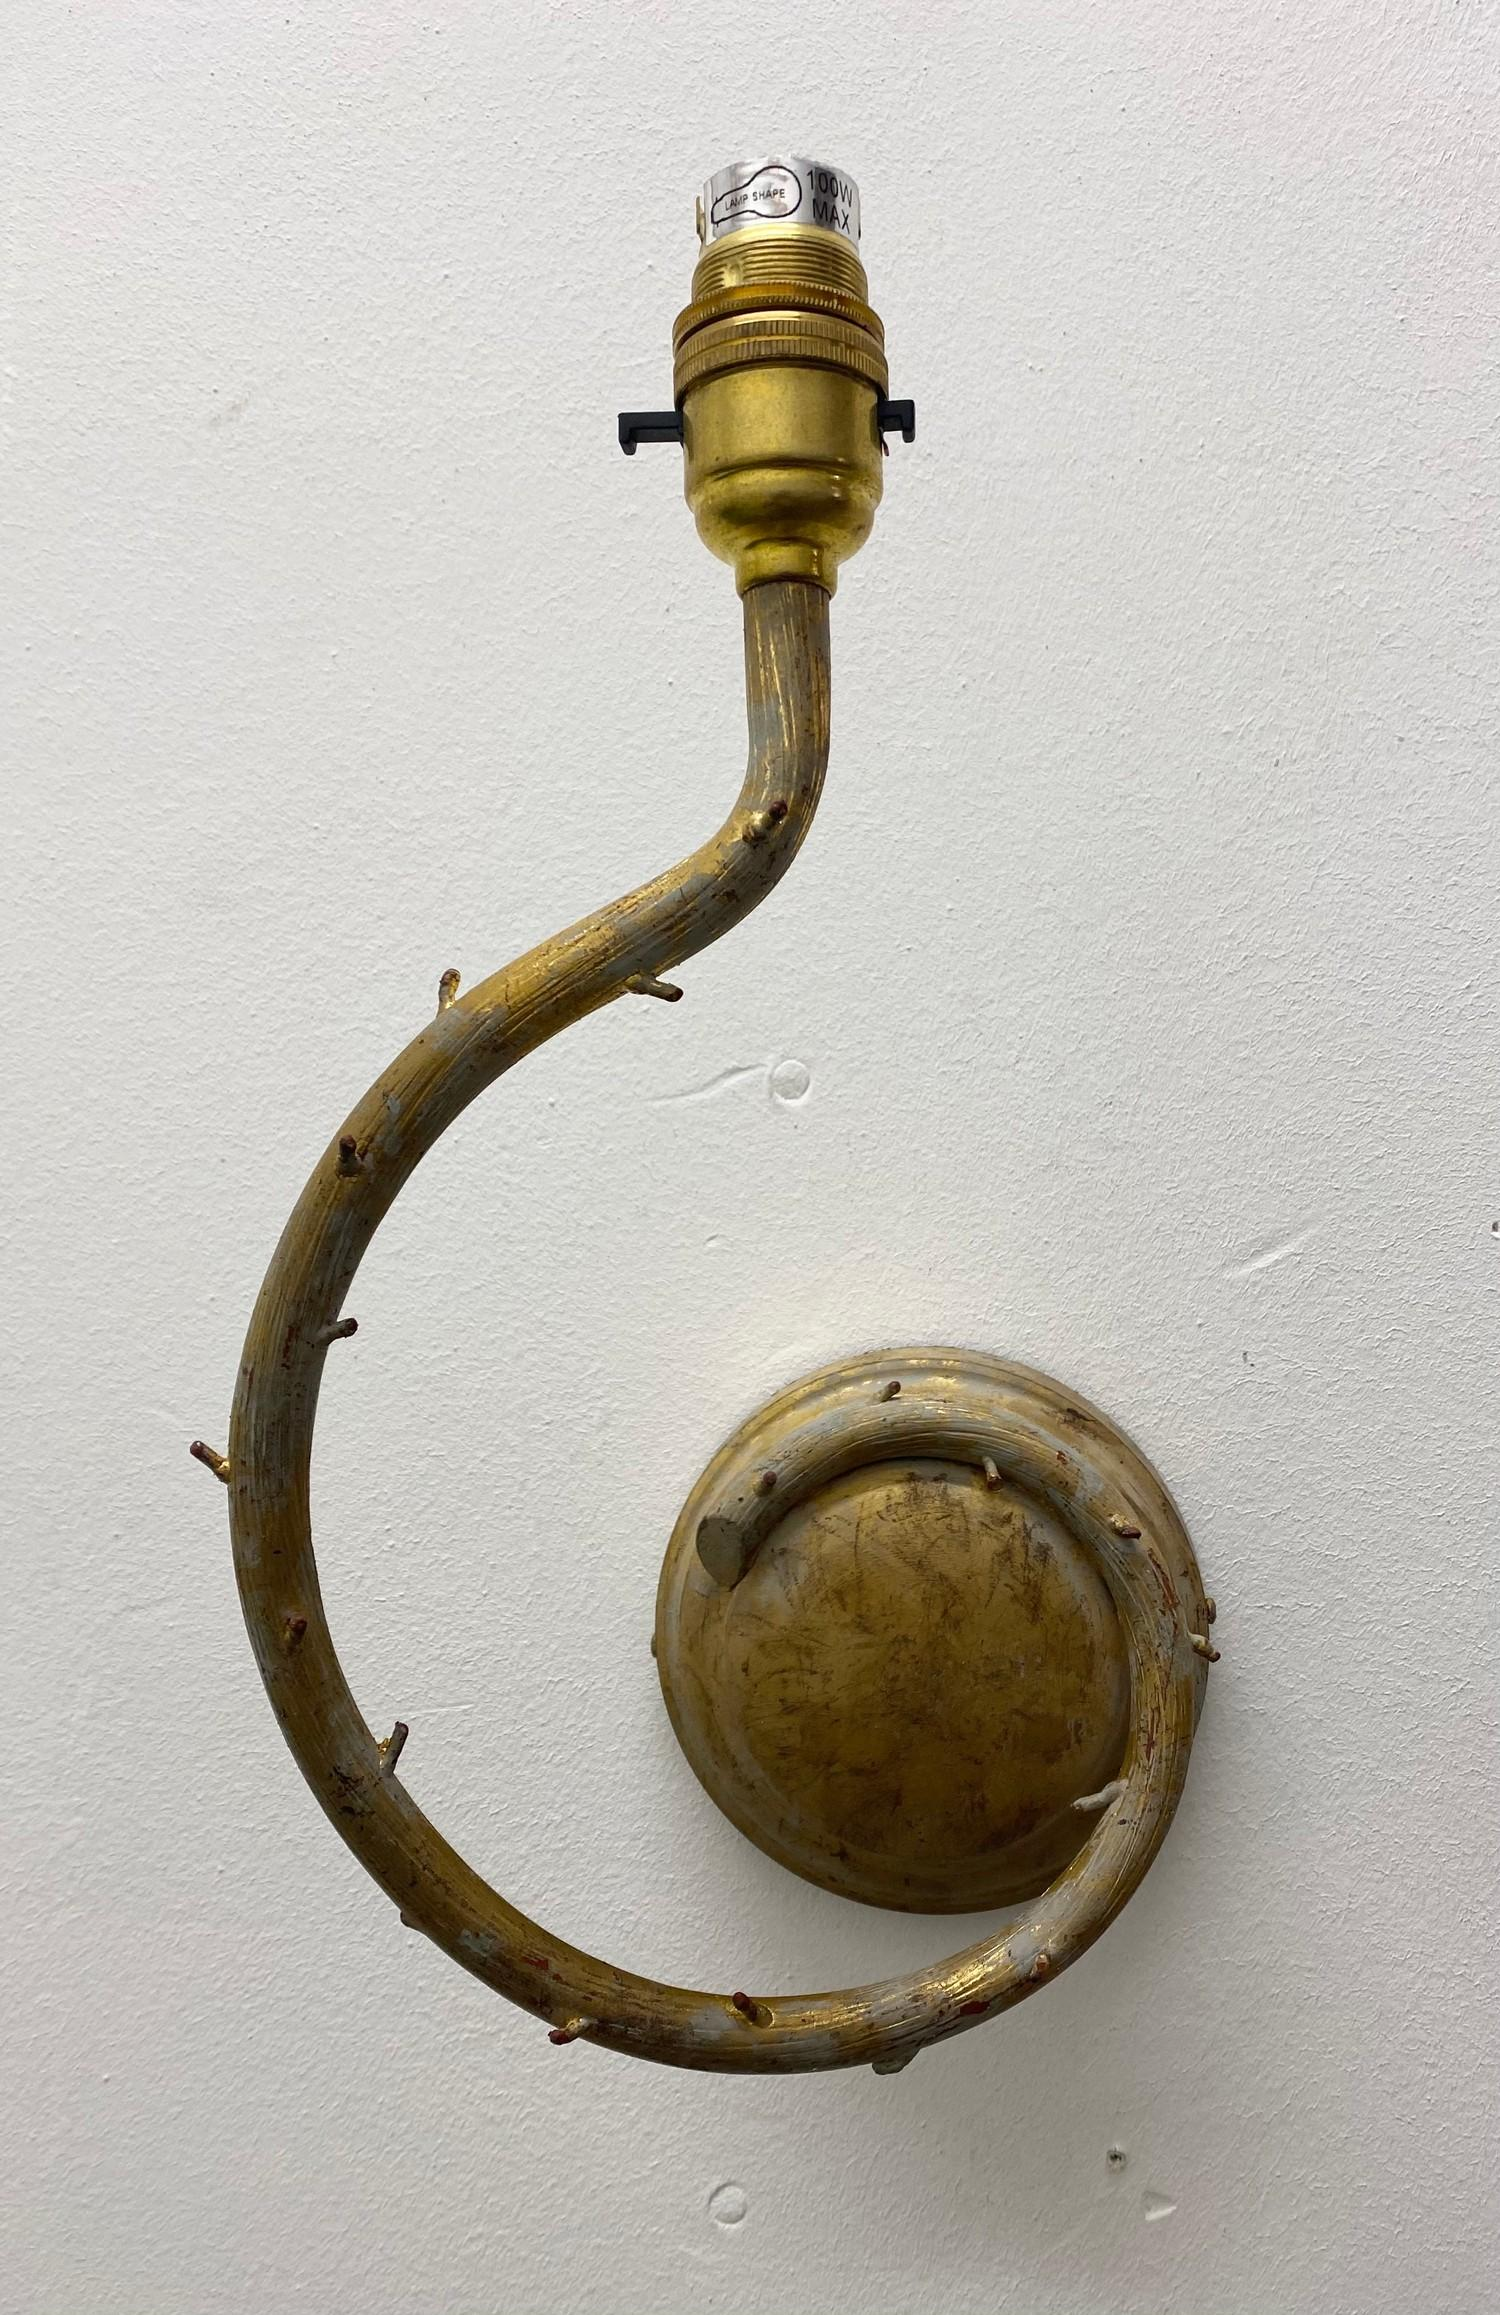 PORTA ROMANA WALL LIGHTS, a near pair, naturalistic branch design in decayed gold, largest 32cm - Image 5 of 5